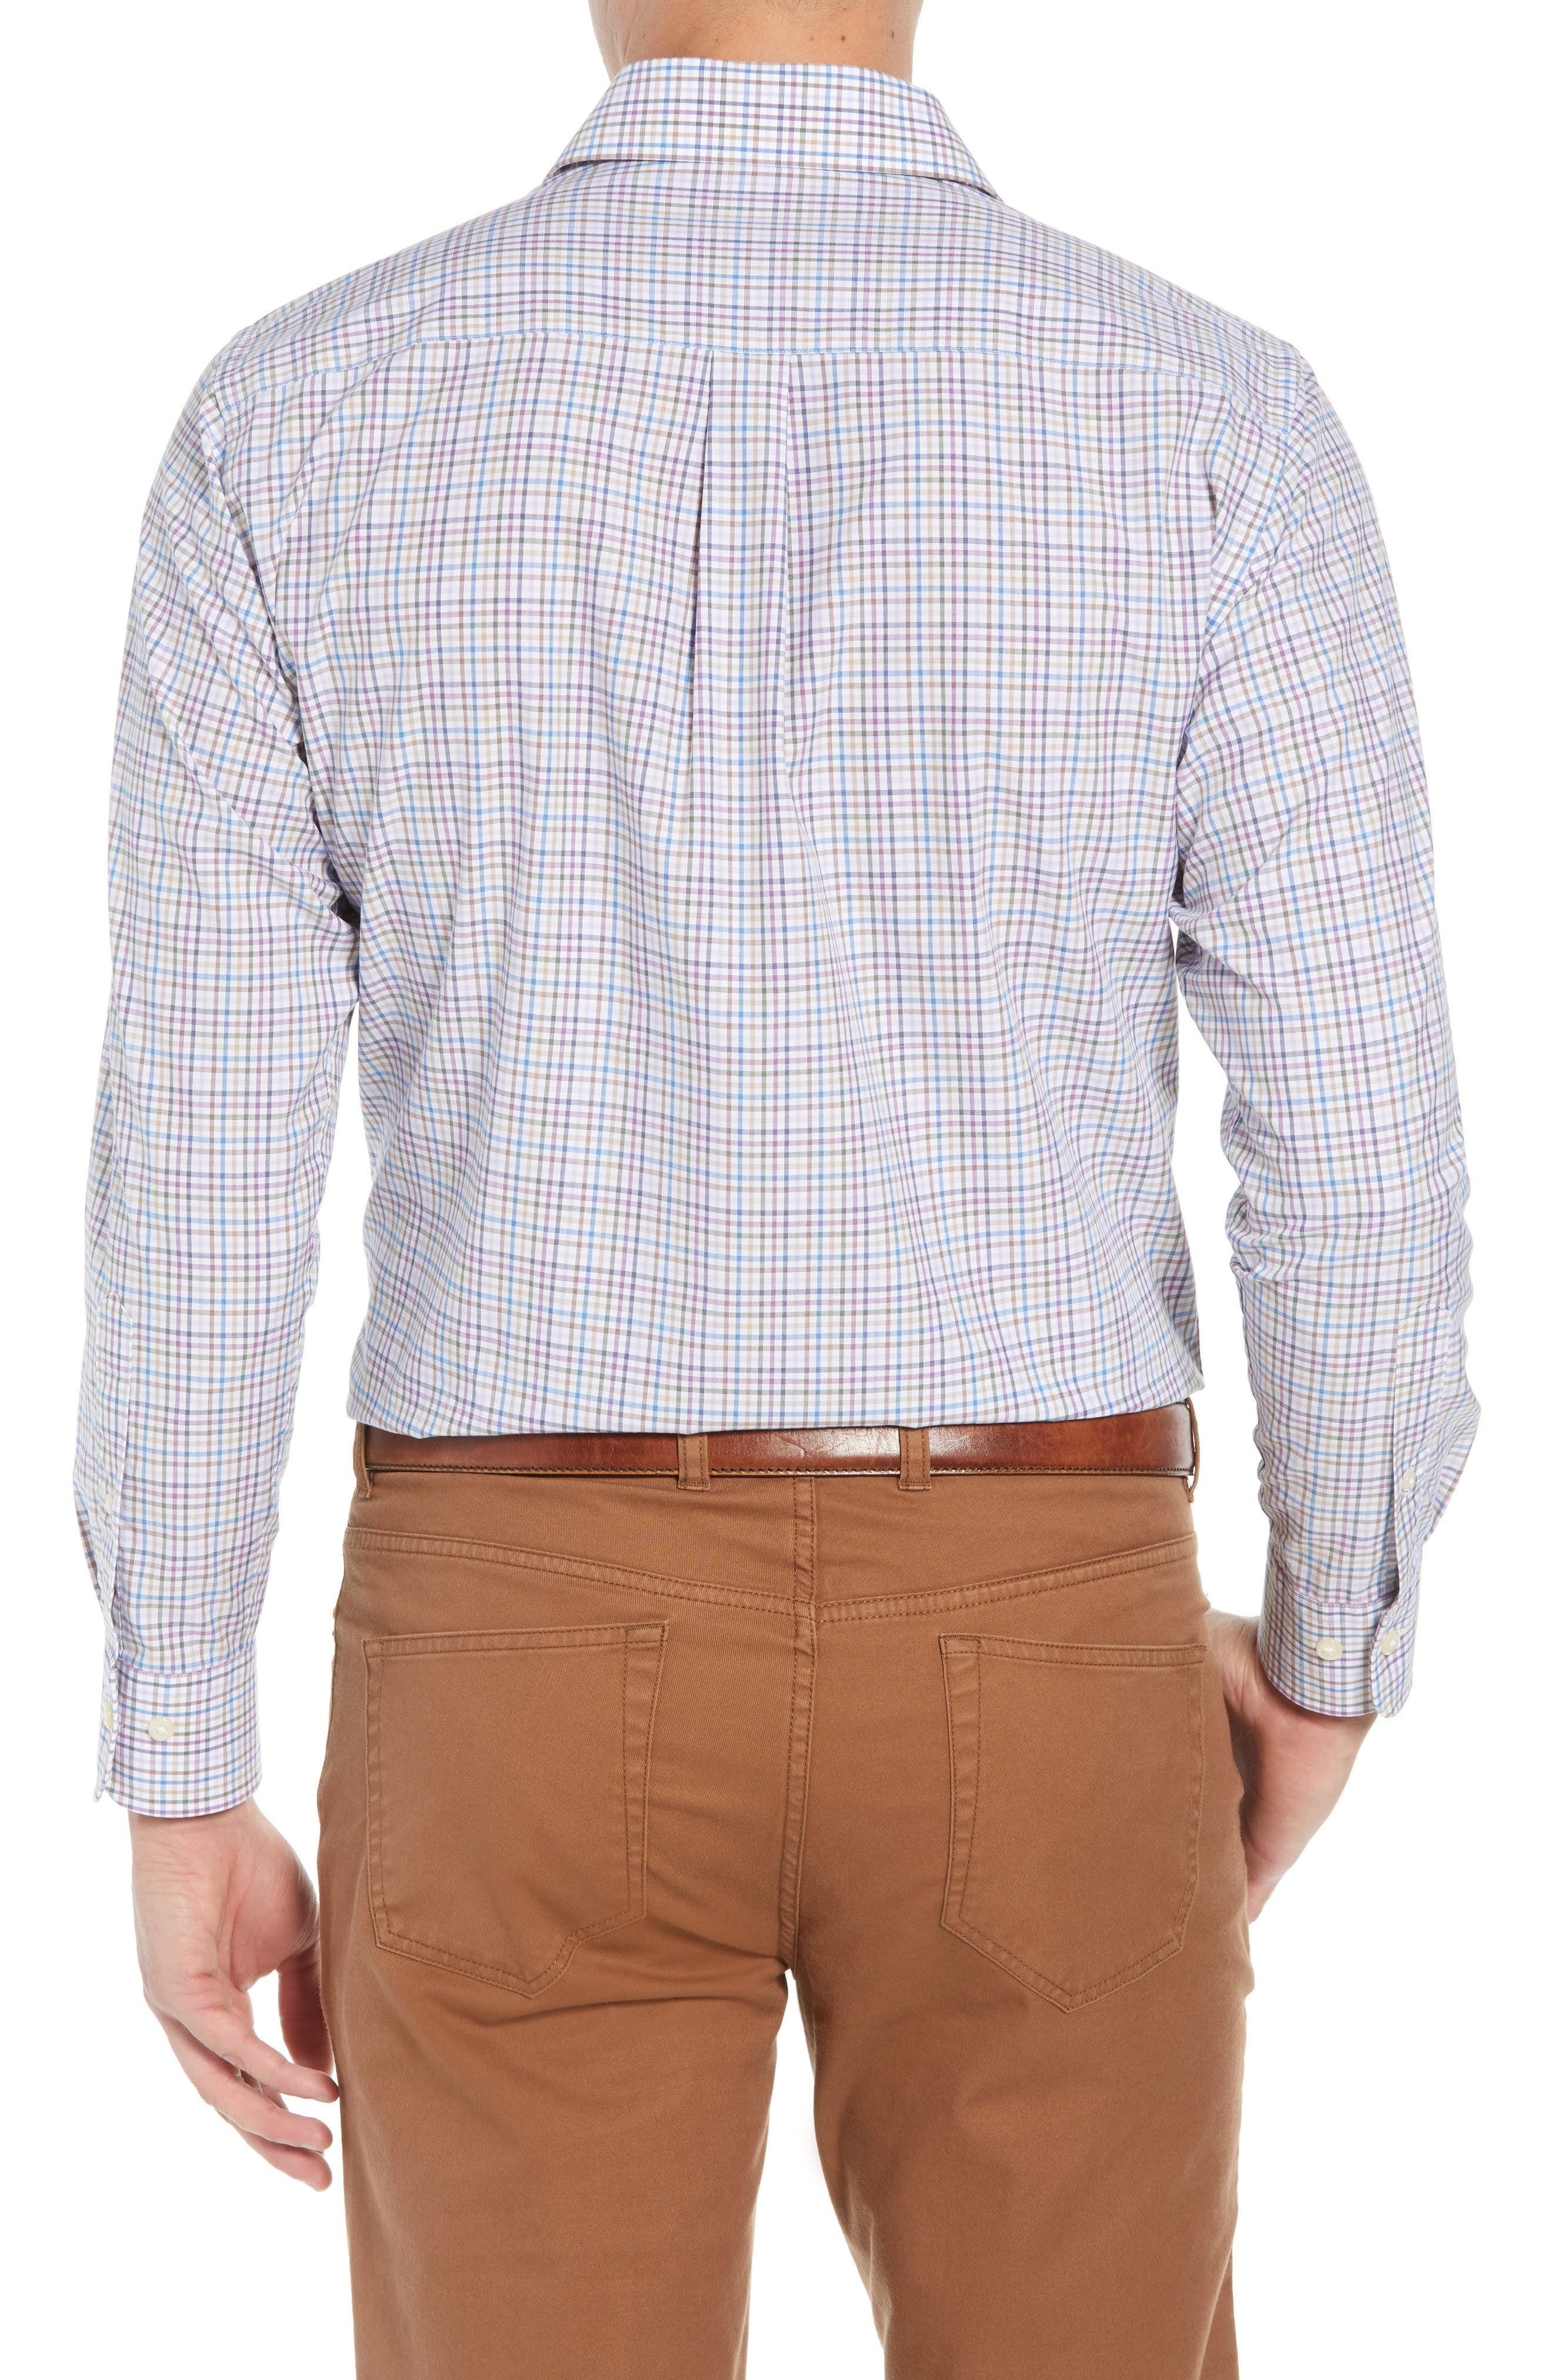 Whittier Heights Check Sport Shirt,                             Alternate thumbnail 3, color,                             BEET